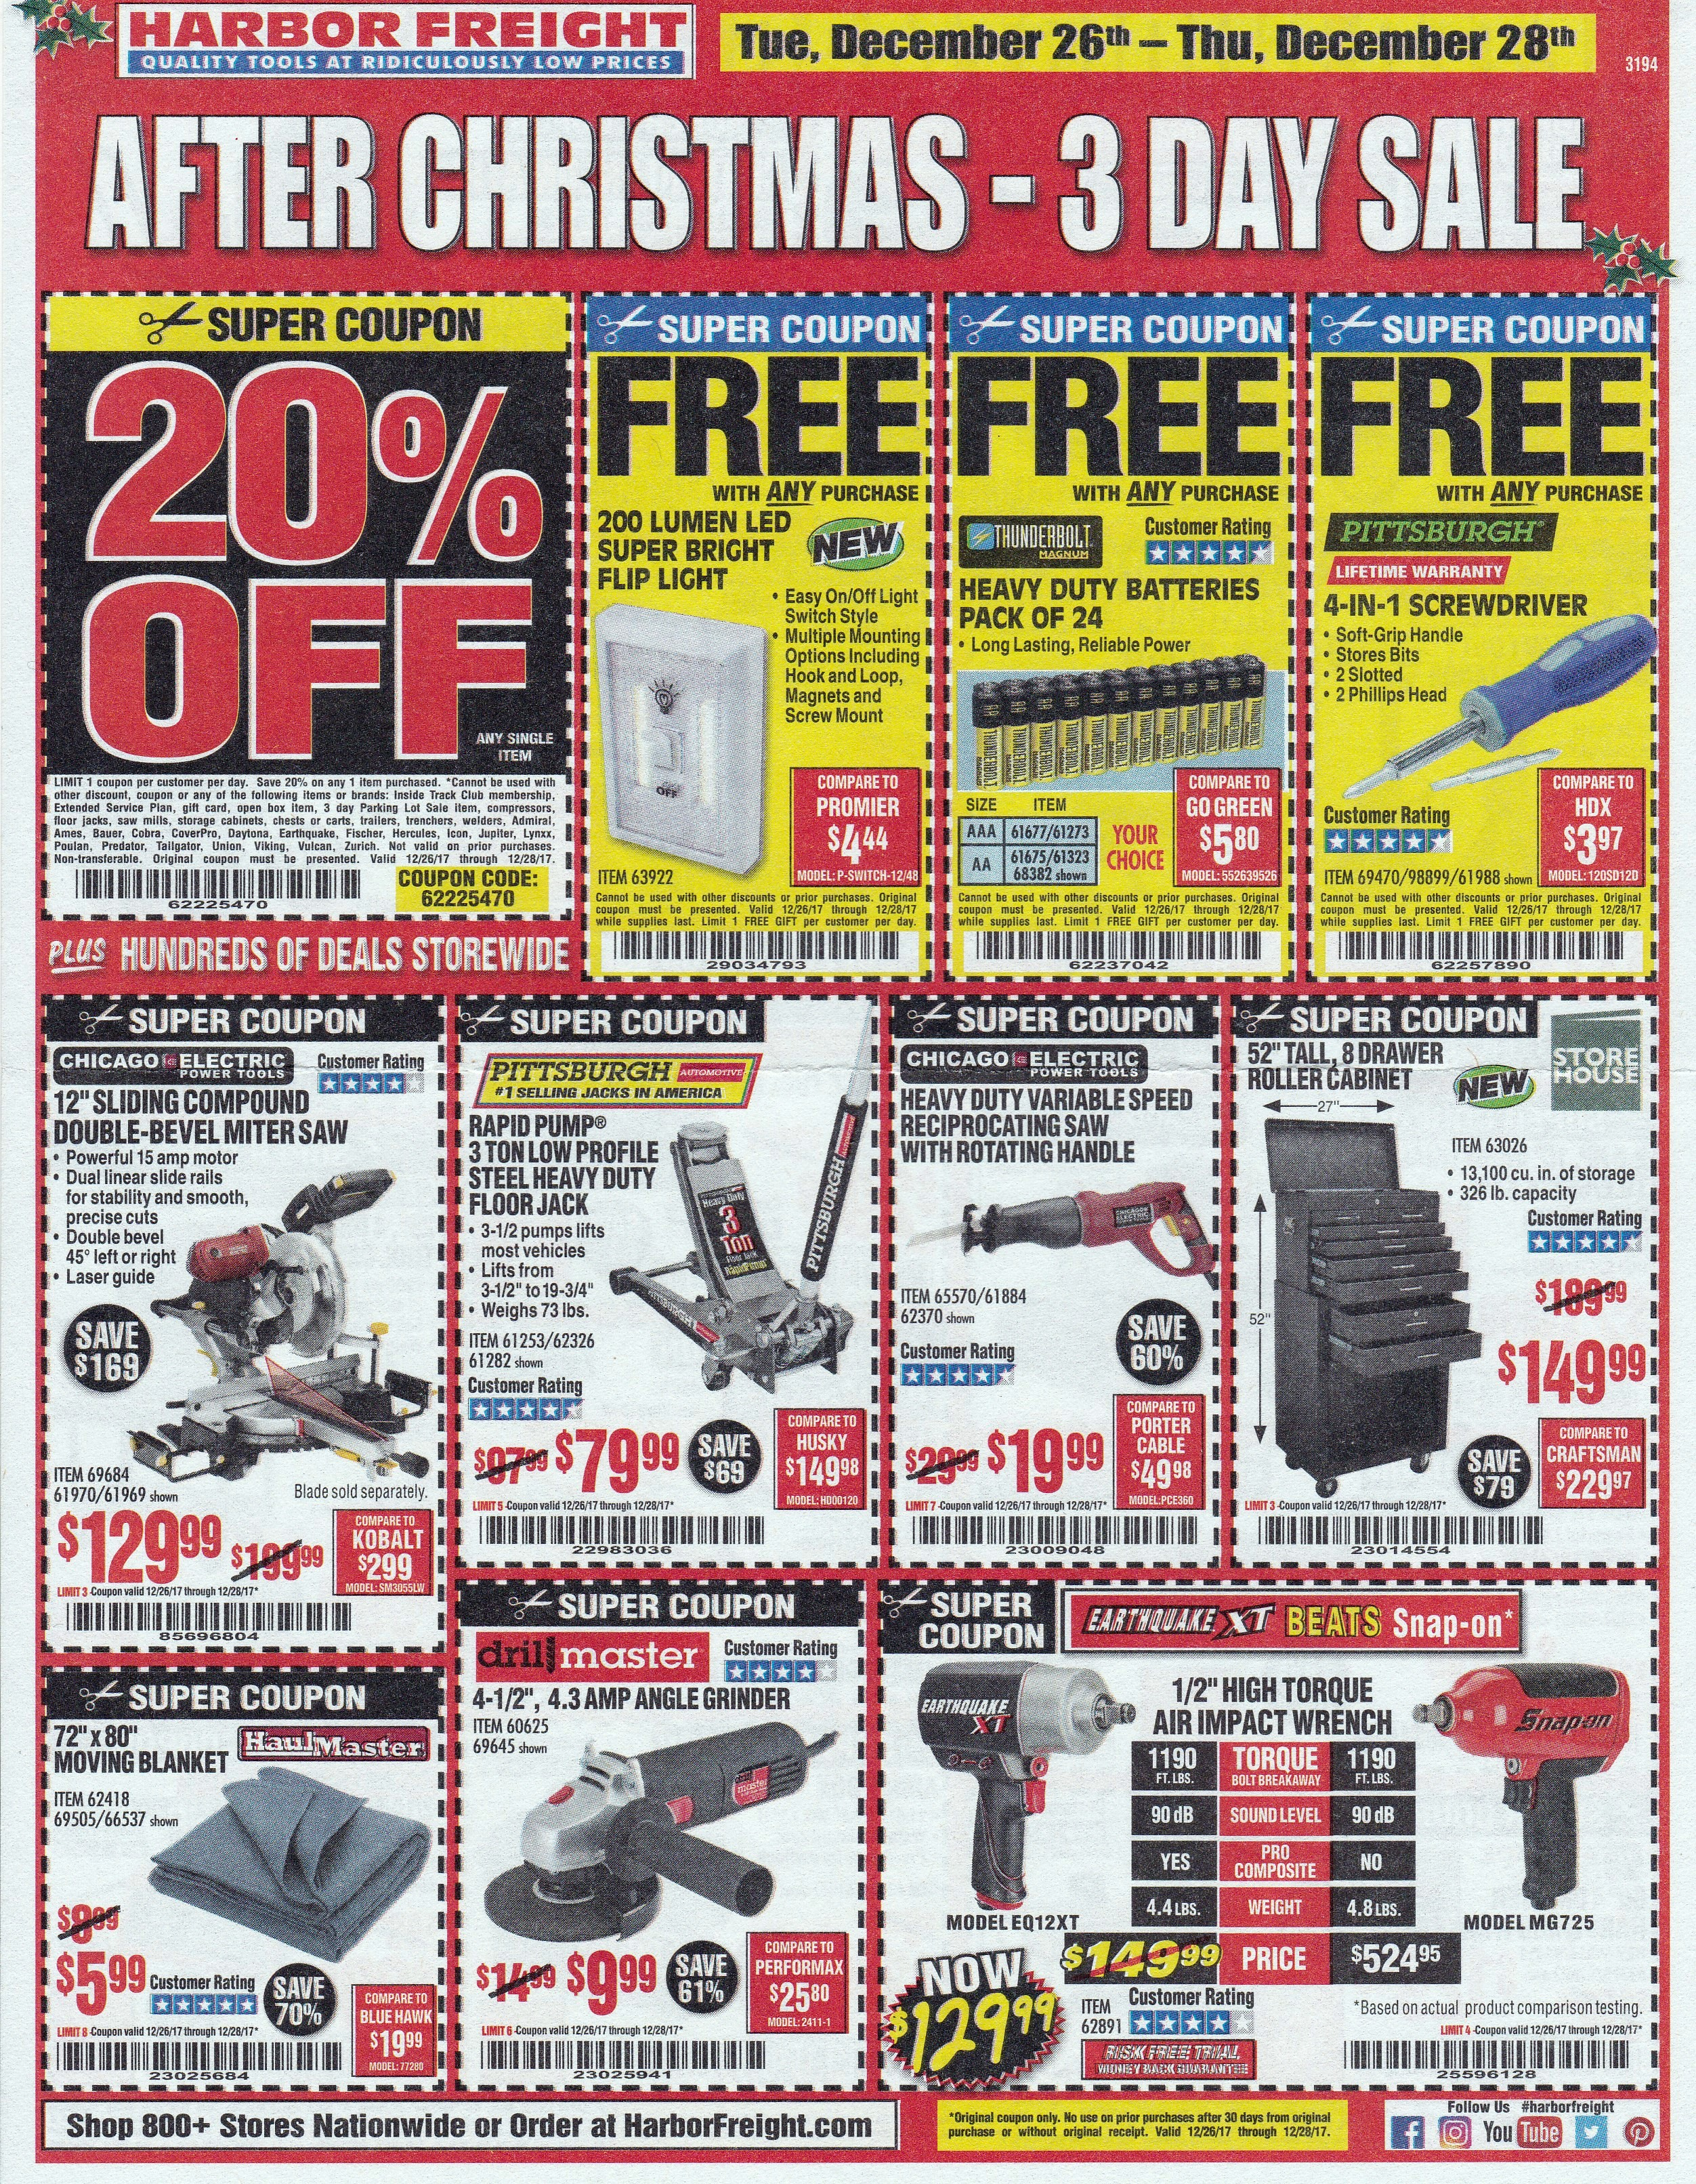 Harbor Freight Christmas Eve Hours.Harbor Freight 3 Day After Christmas Sale With A Never